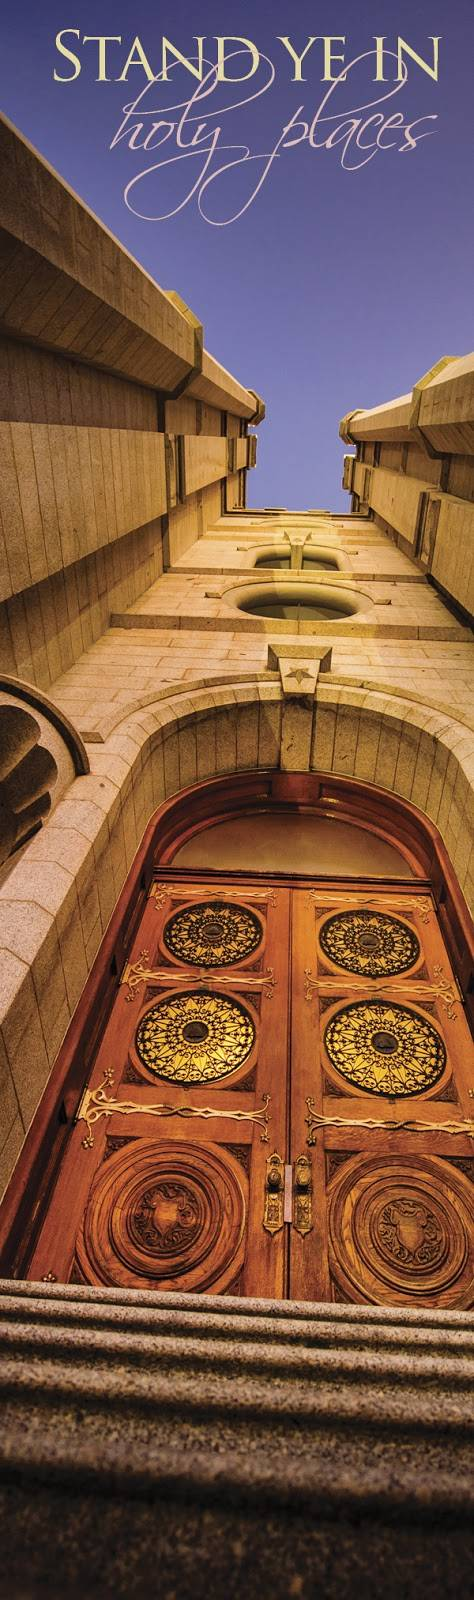 "LDS art photo of the Salt Lake Temple doors by Scott Jarvie. Text reads: ""Stand ye in holy places."""